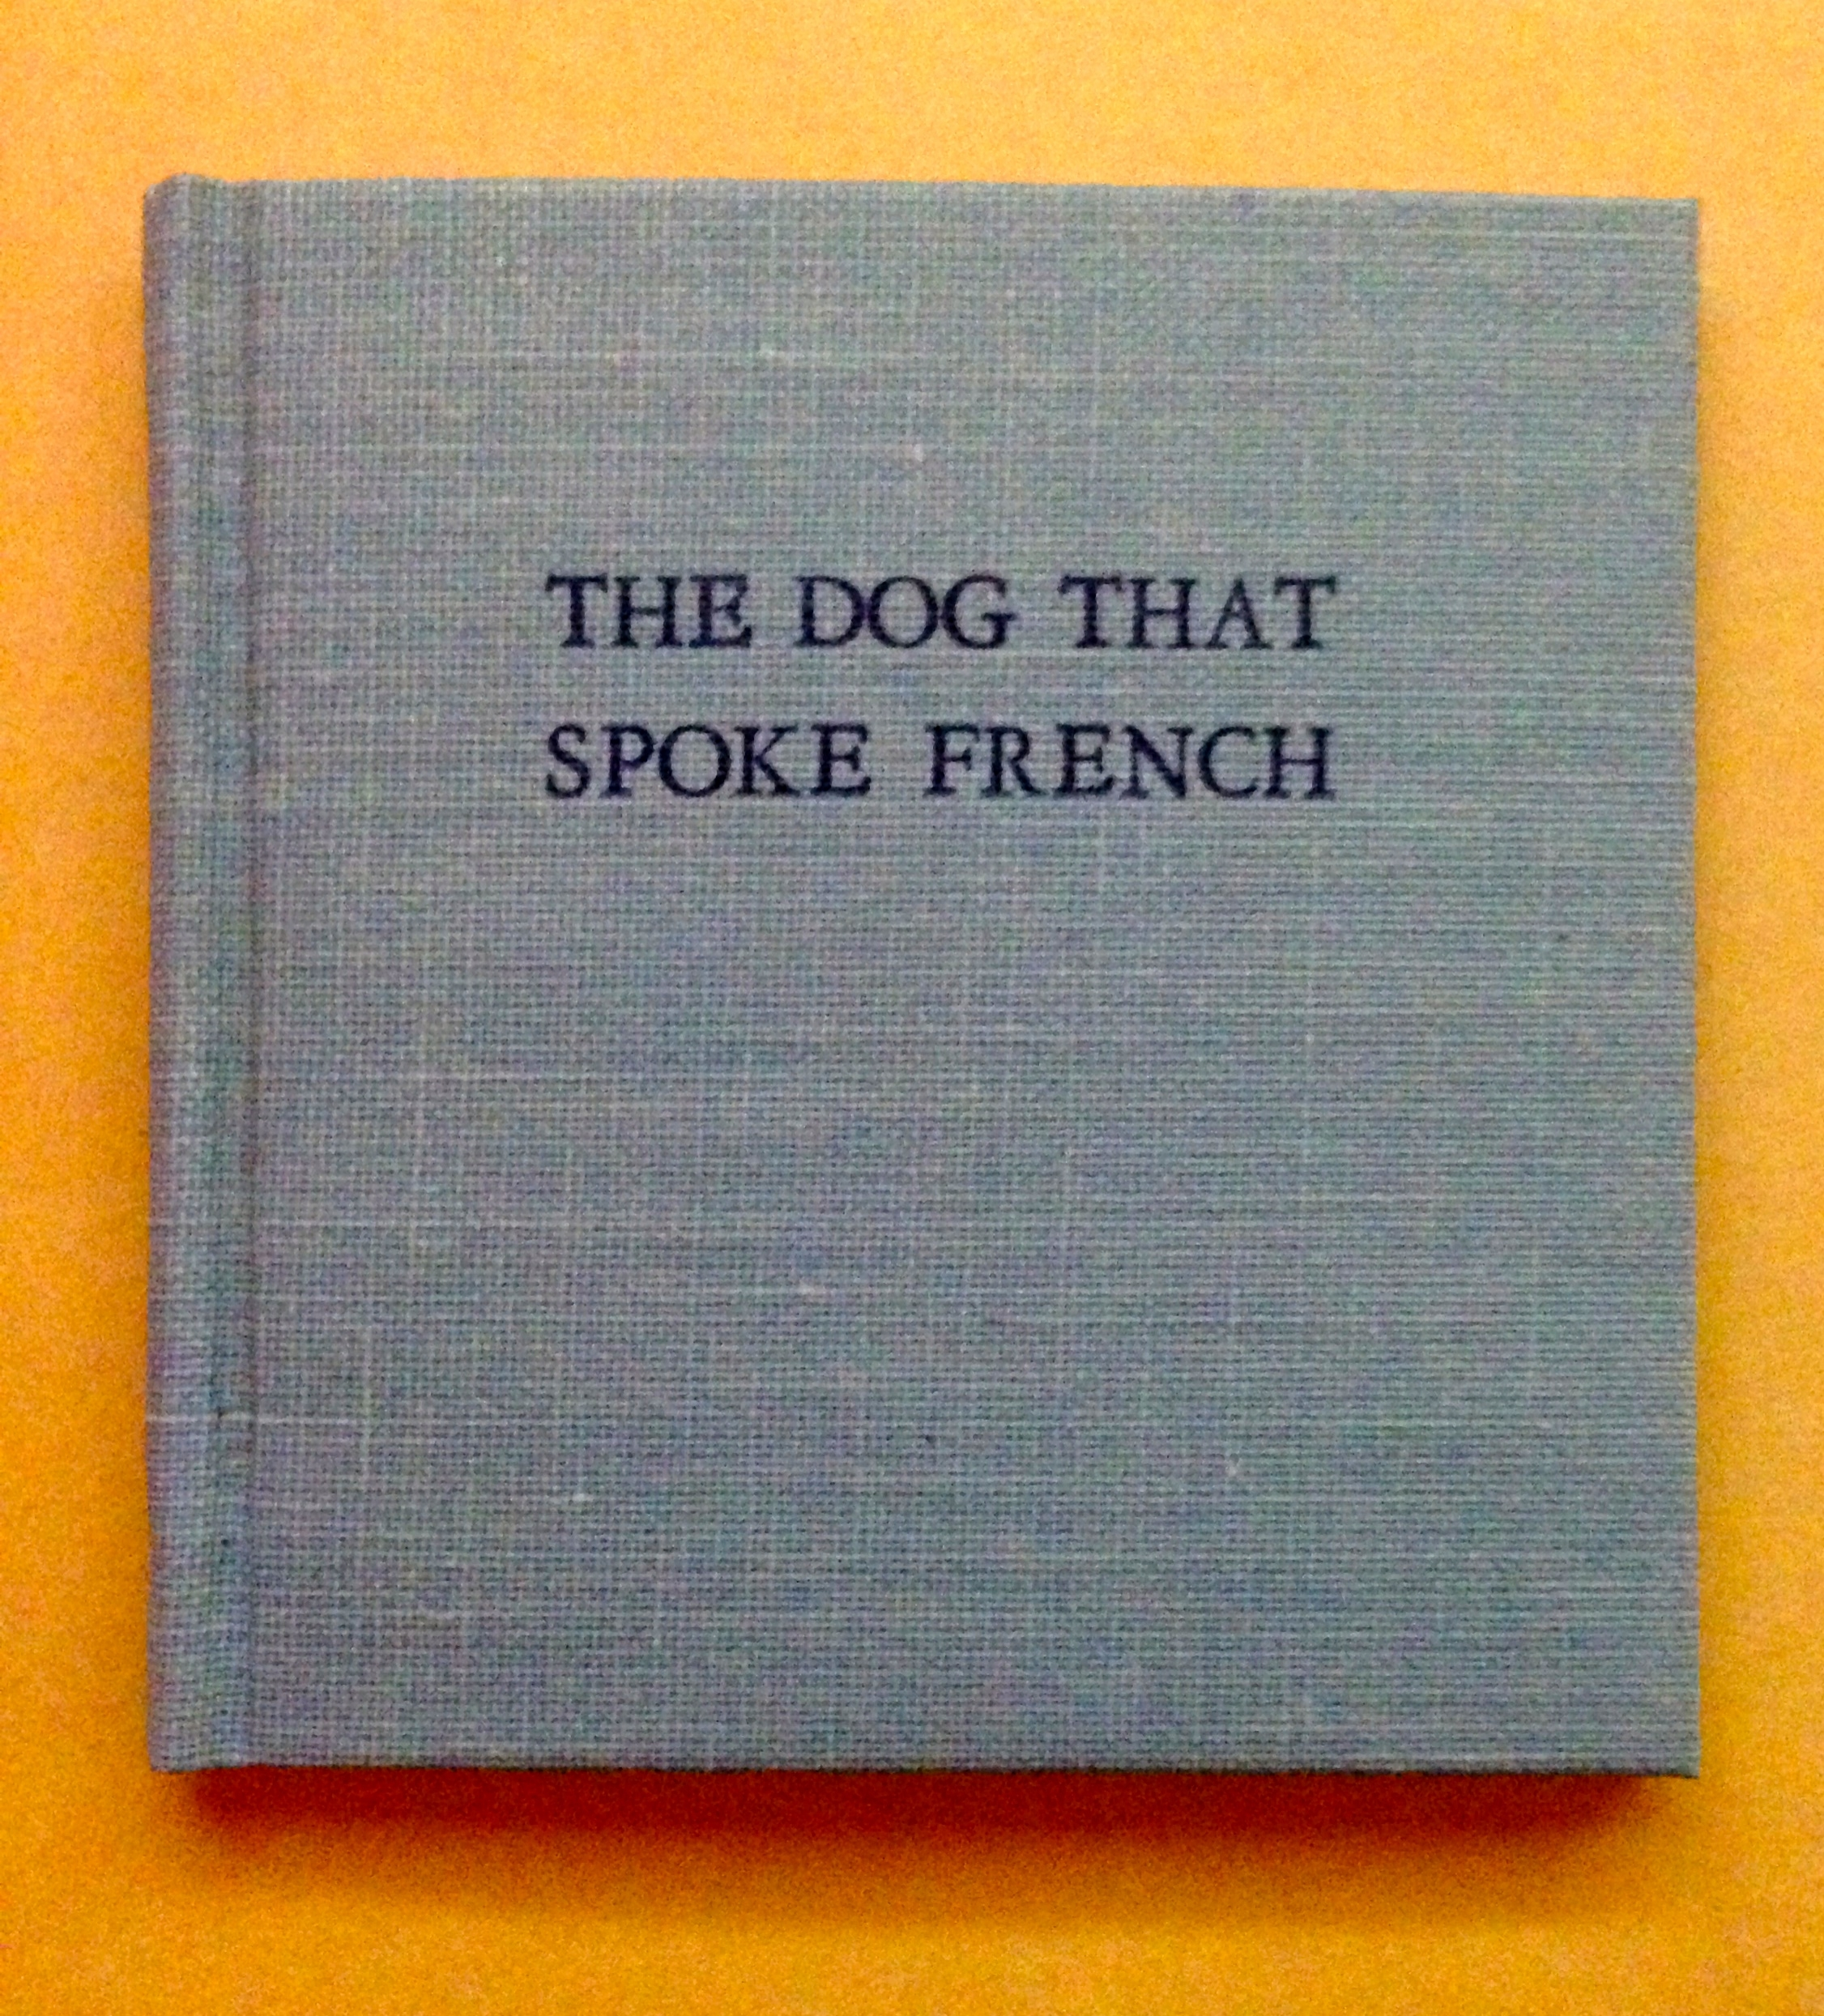 The Dog That Spoke French    was published in Brandenton, Fla. by the Opuscula Press in 1992 .